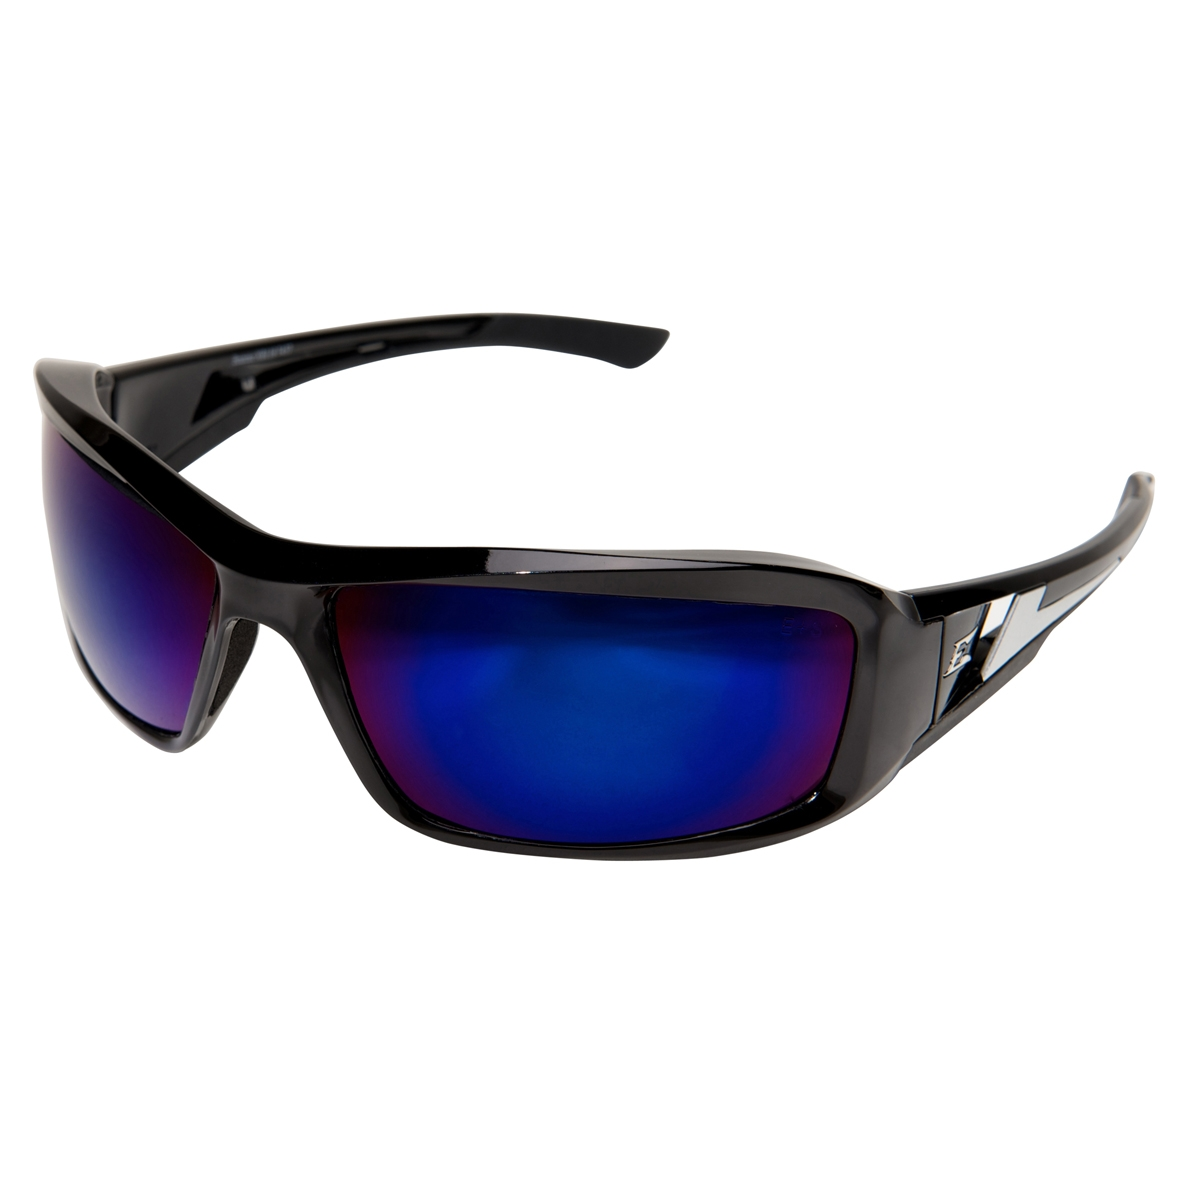 Safety Glasses Black Frame : Edge XB118 Brazeau Safety Glasses - Black Frame - Blue ...